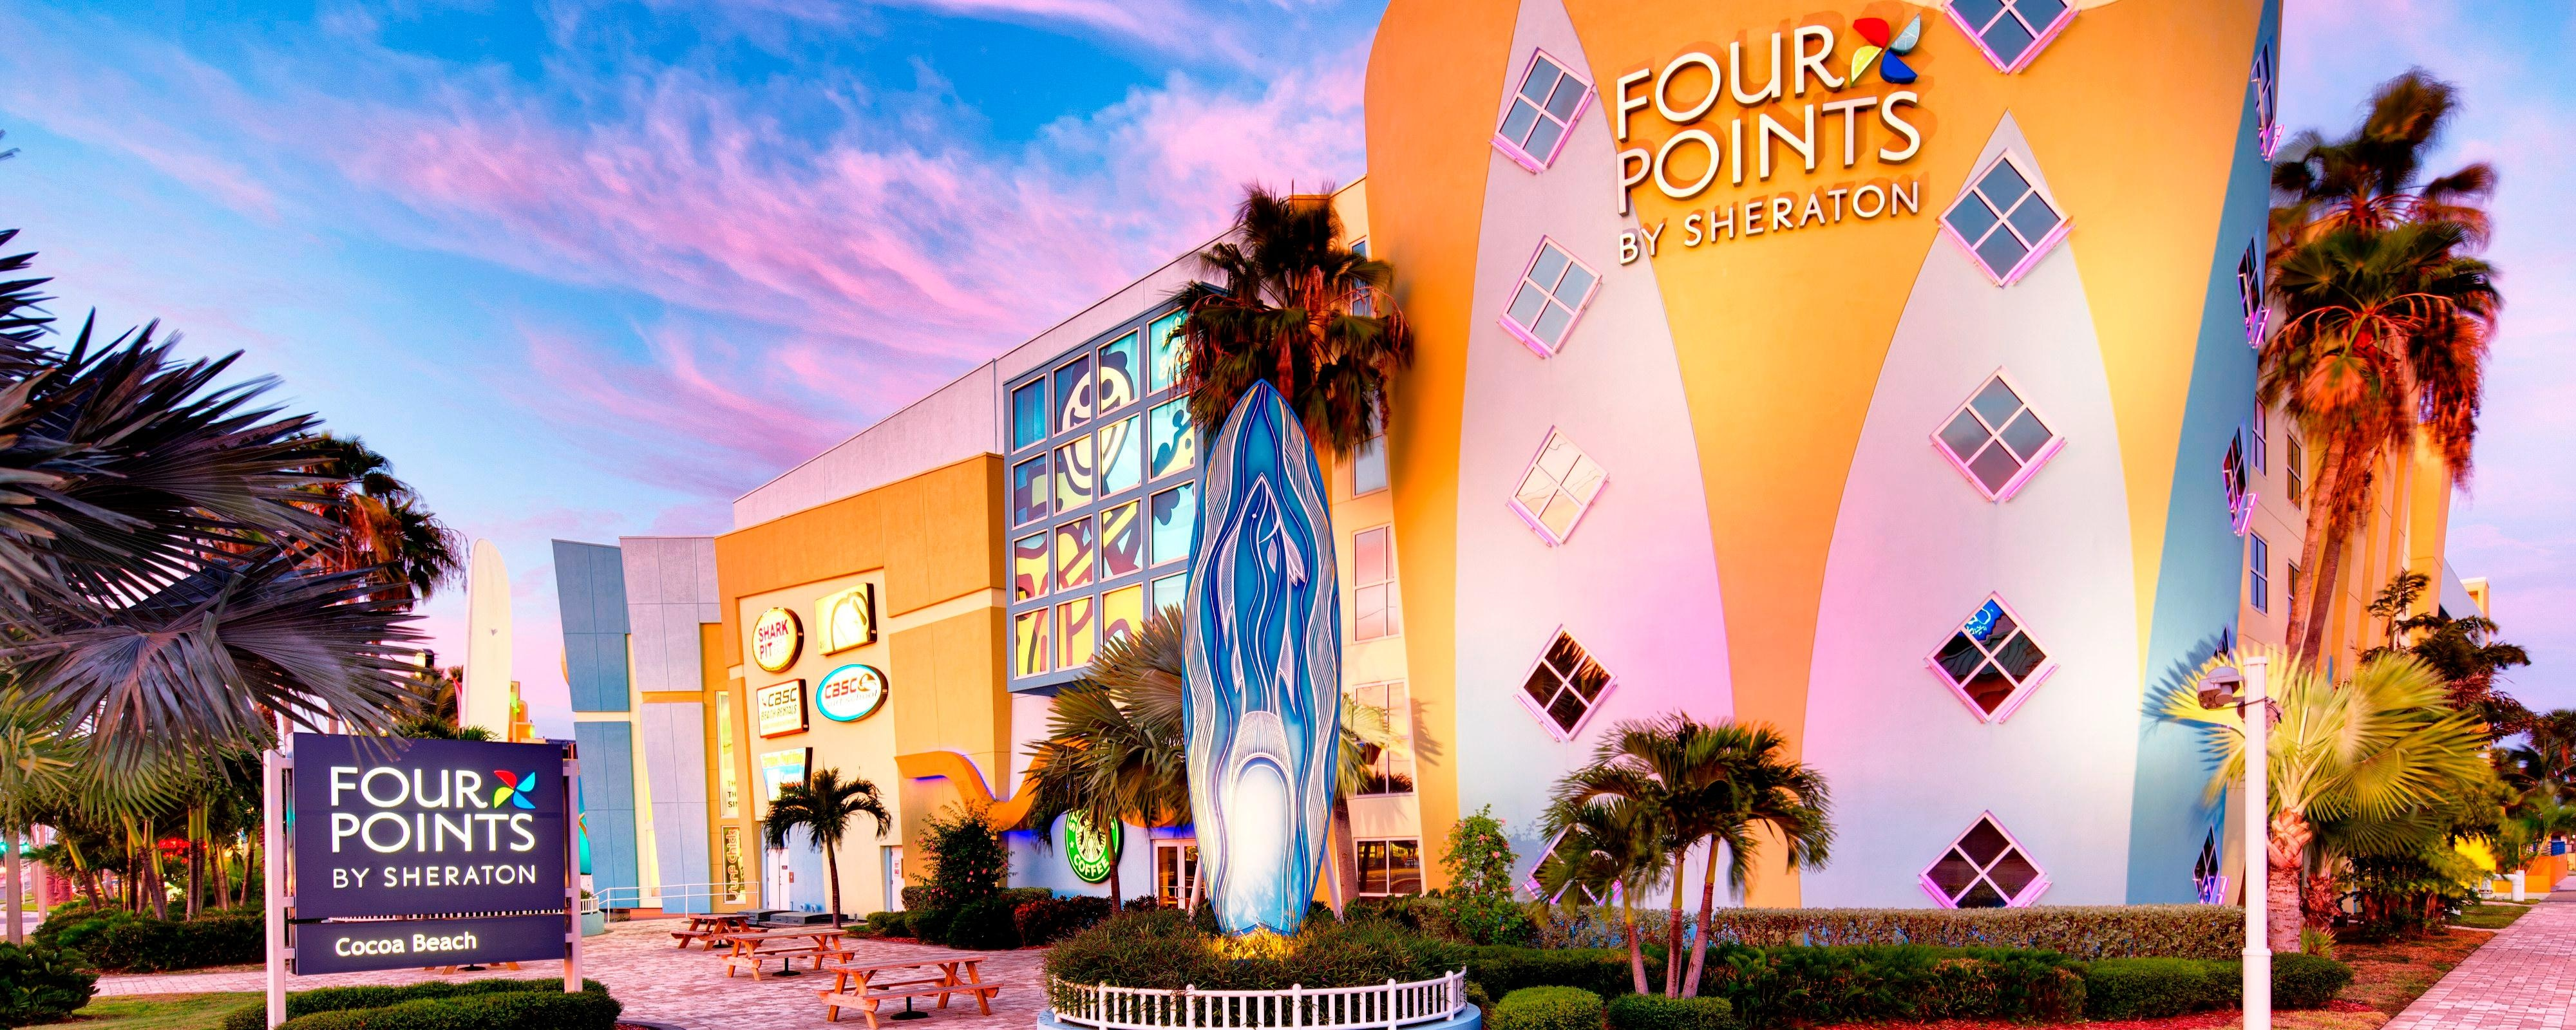 Port Canaveral Hotels with Cruise Parking | Four Points by ... on longboat key hotel map, klamath falls hotel map, daytona hotel map, mitchell hotel map, albany hotel map, pensacola hotel map, overland park hotel map, ann arbor hotel map, jacksonville hotel map, georgetown hotel map, wichita hotel map, orange county convention center hotel map, punta gorda hotel map, kent hotel map, boca raton hotel map, gulfport hotel map, geneva hotel map, kalamazoo hotel map, edgewater hotel map, davenport hotel map,